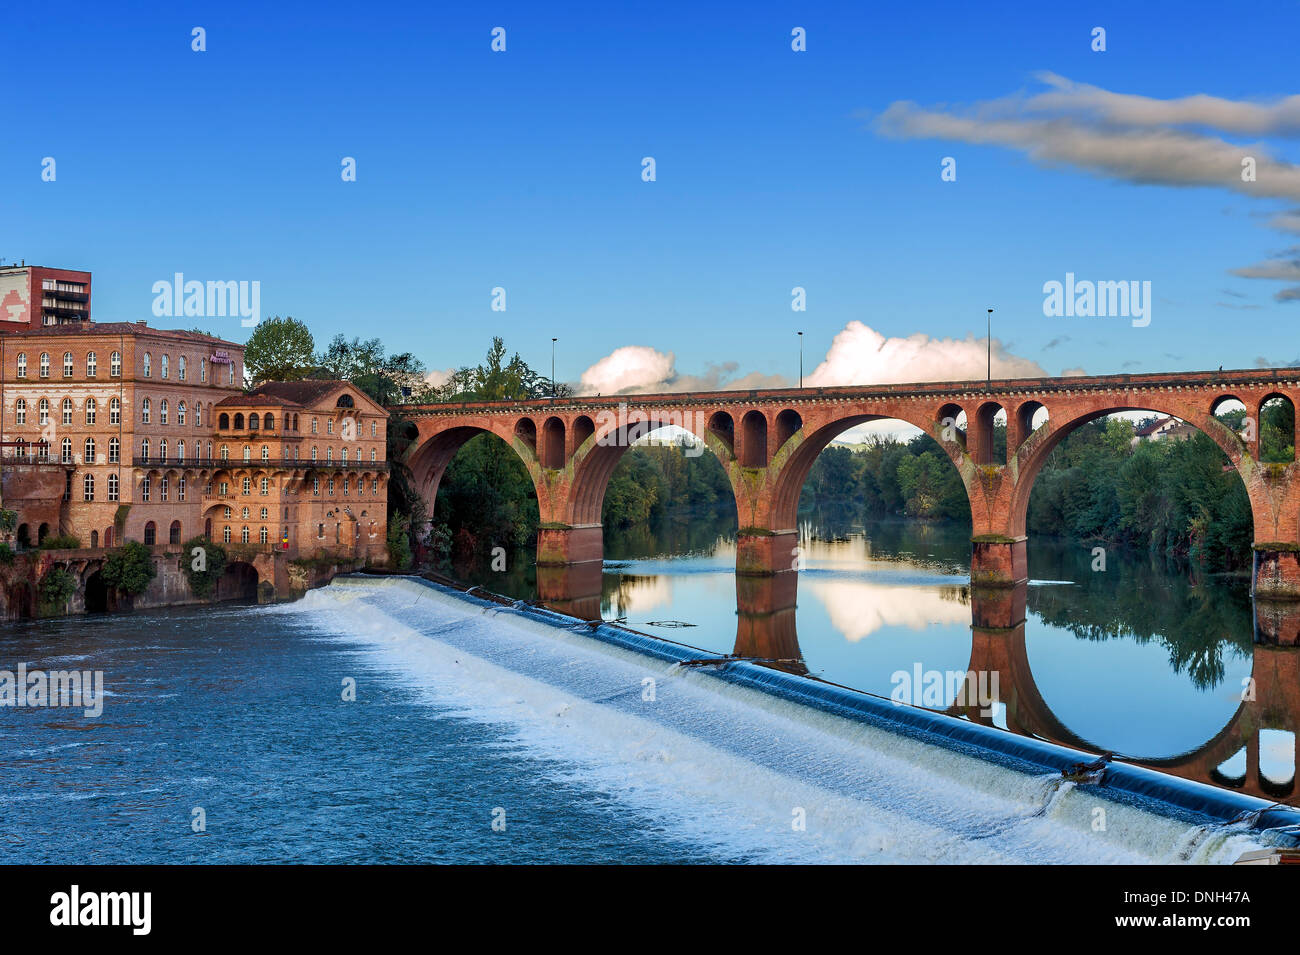 Europe, France, Tarn, Albi. The bridge of the August 22, 1944 and Mills Albigensian. - Stock Image